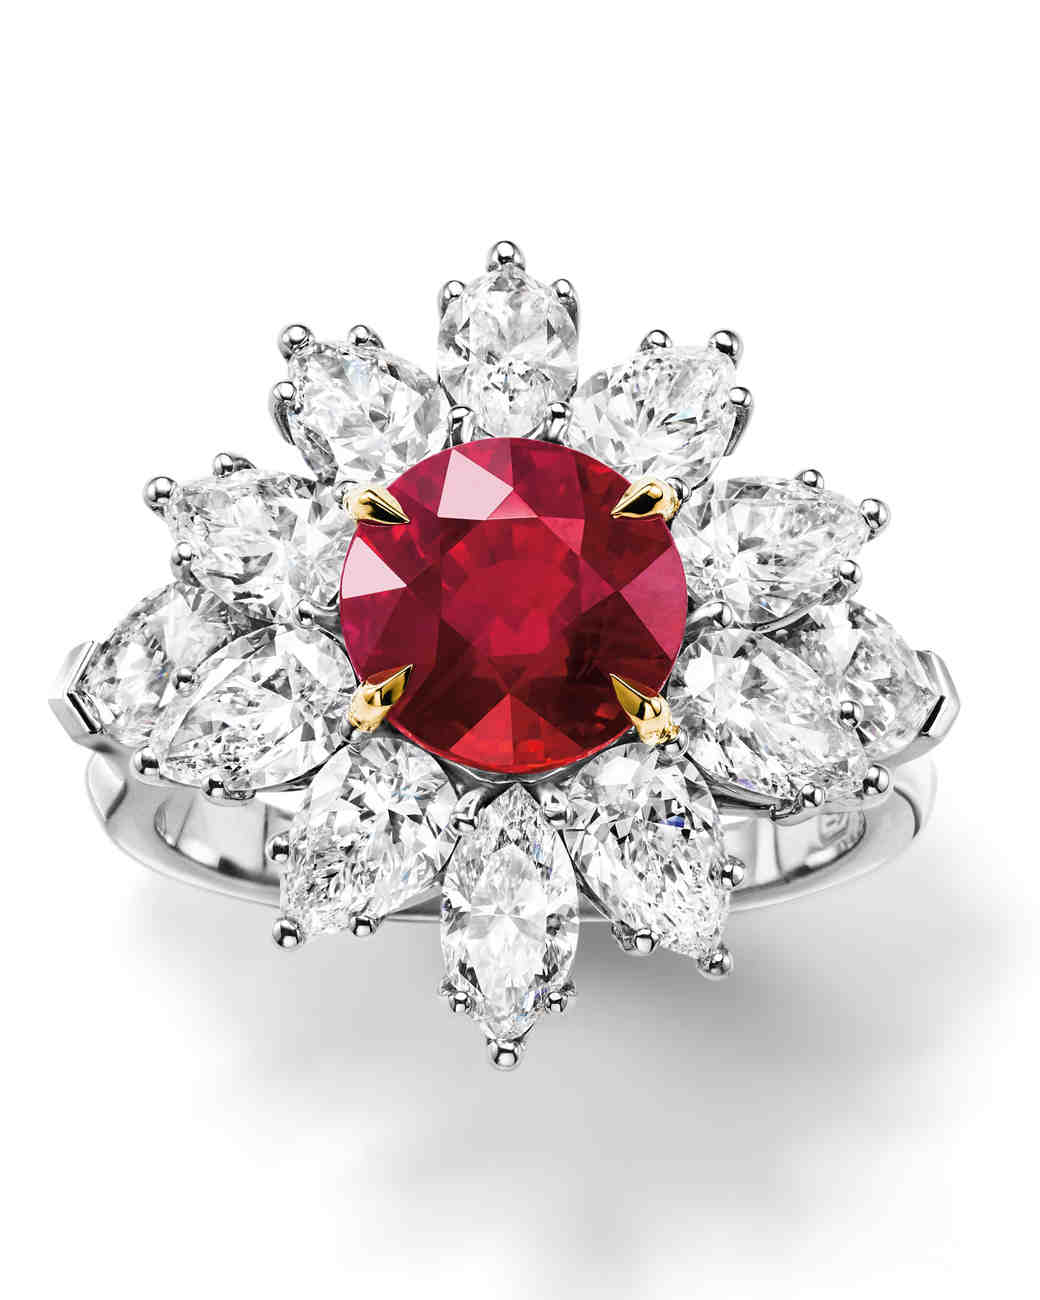 Harry Winston Ruby Engagement Ring with Flower Diamond Halo